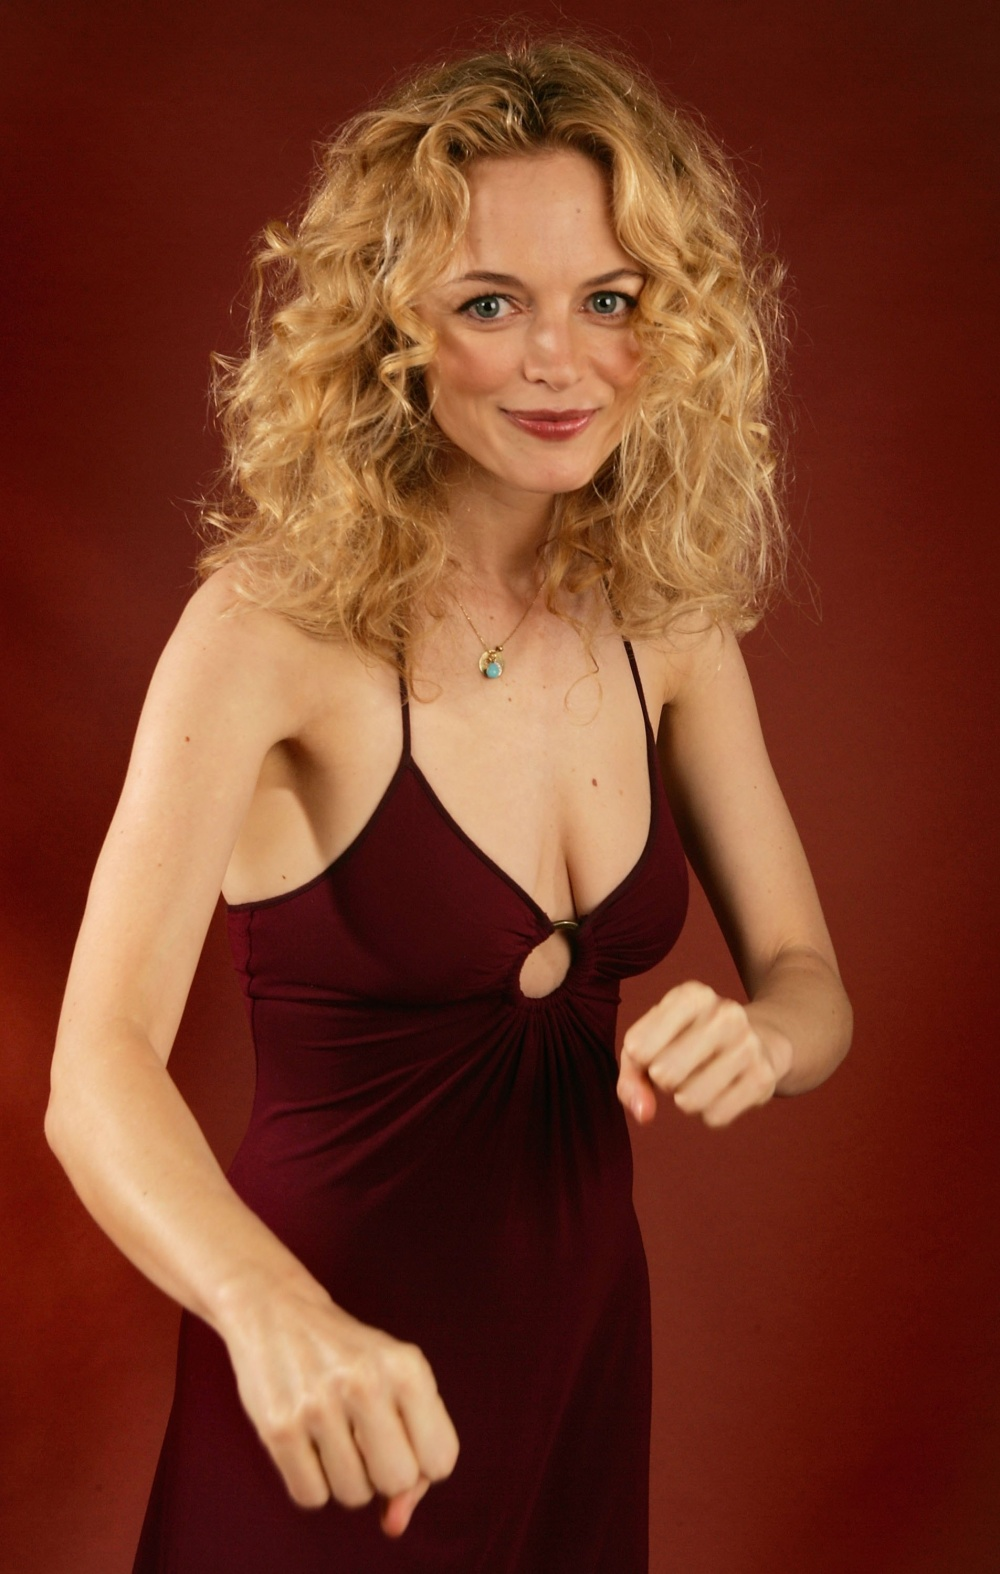 Хэзер Грэм ( Heather Graham )